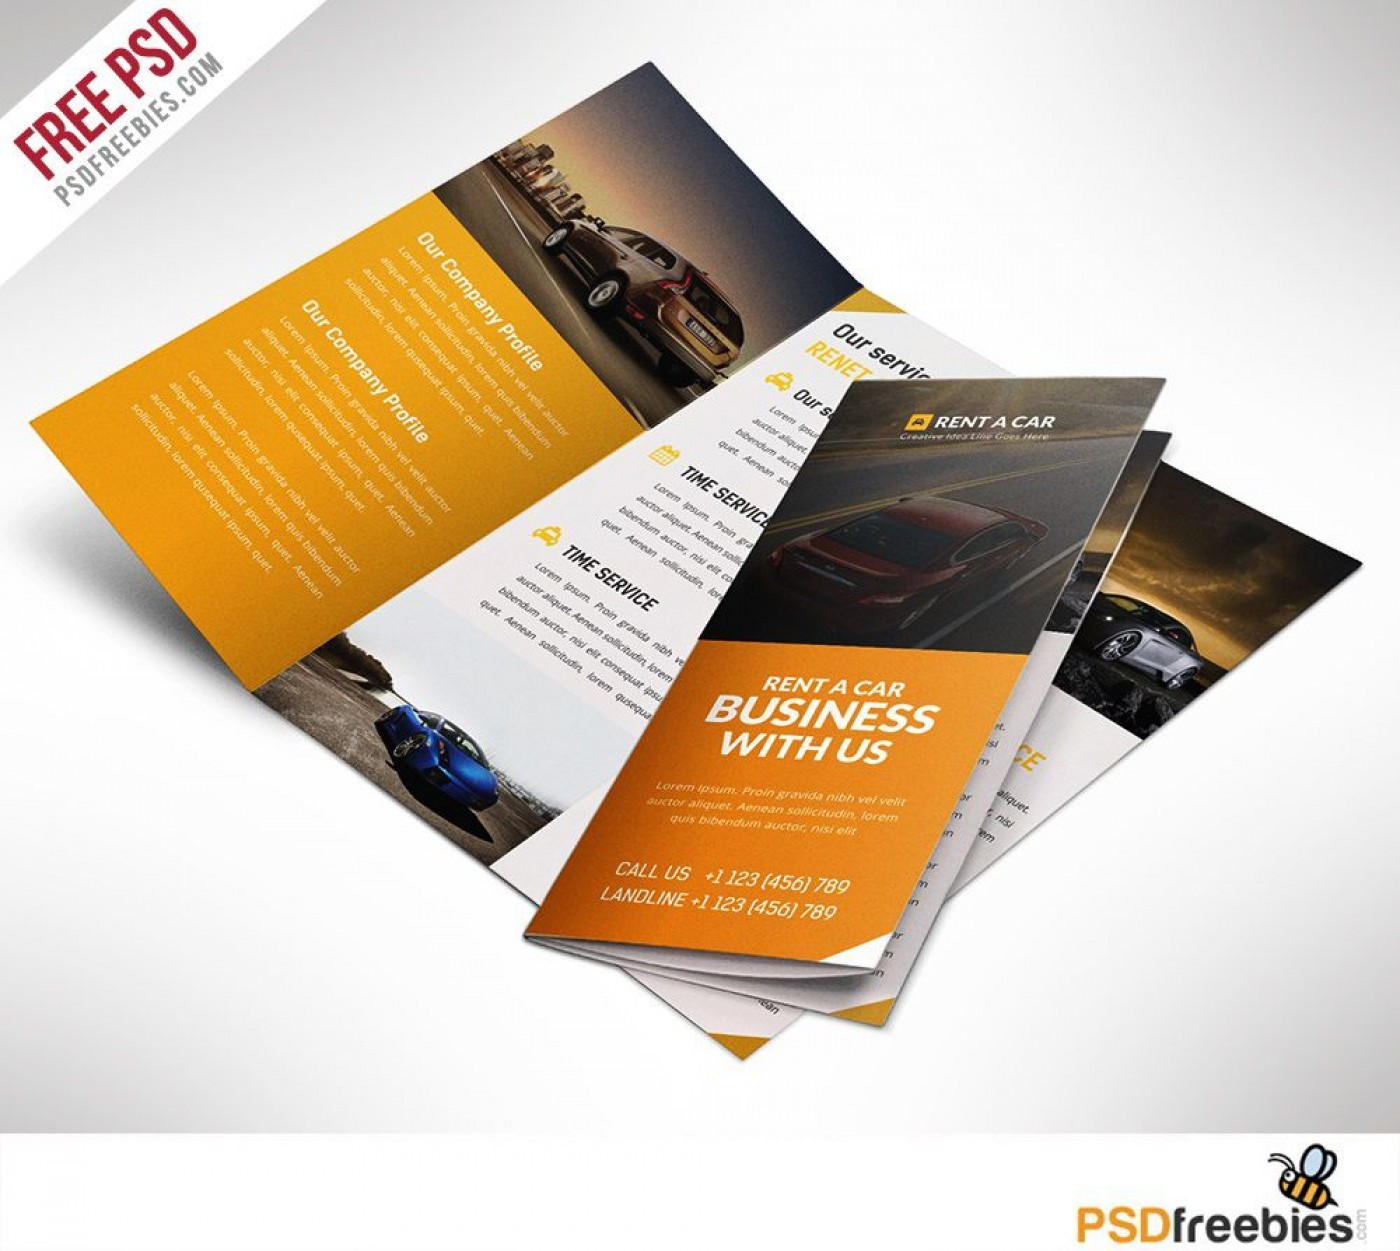 003 Incredible Brochure Template Photoshop Cs6 Free Download Image 1400